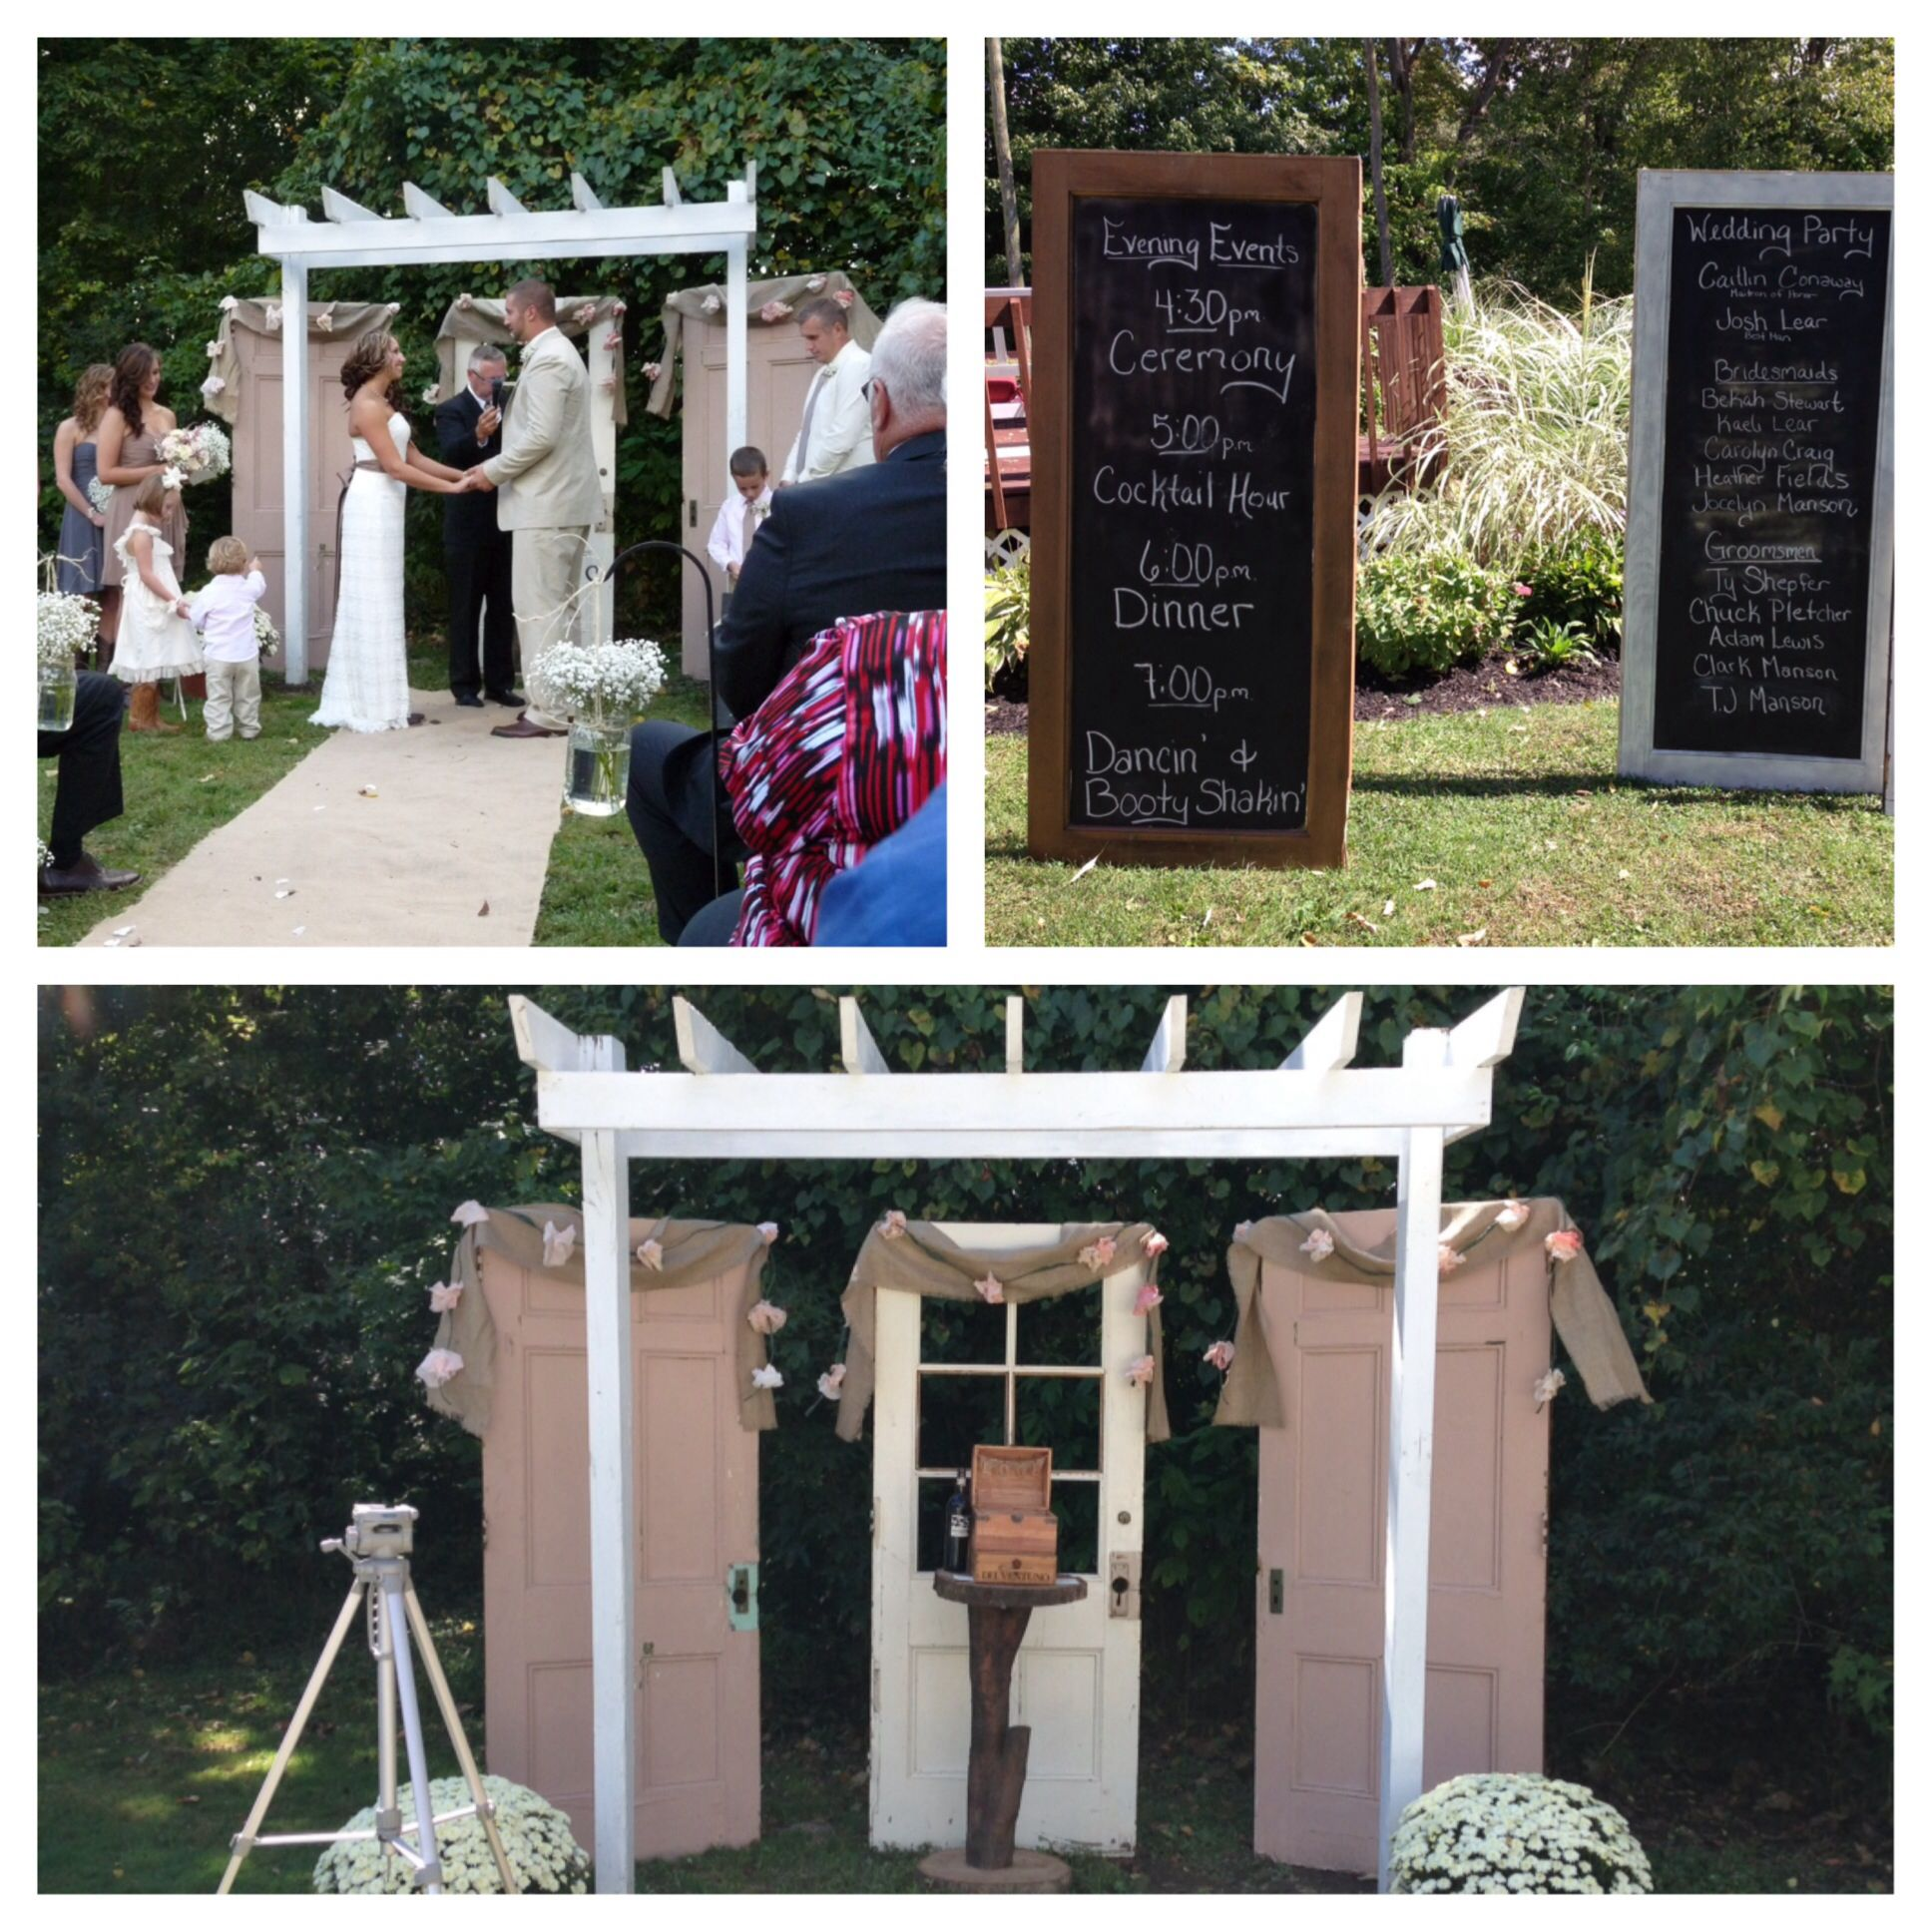 Outdoor Wedding Ceremony Doors: Incorporate Old Doors Into Your Ceremony As Back Drops And